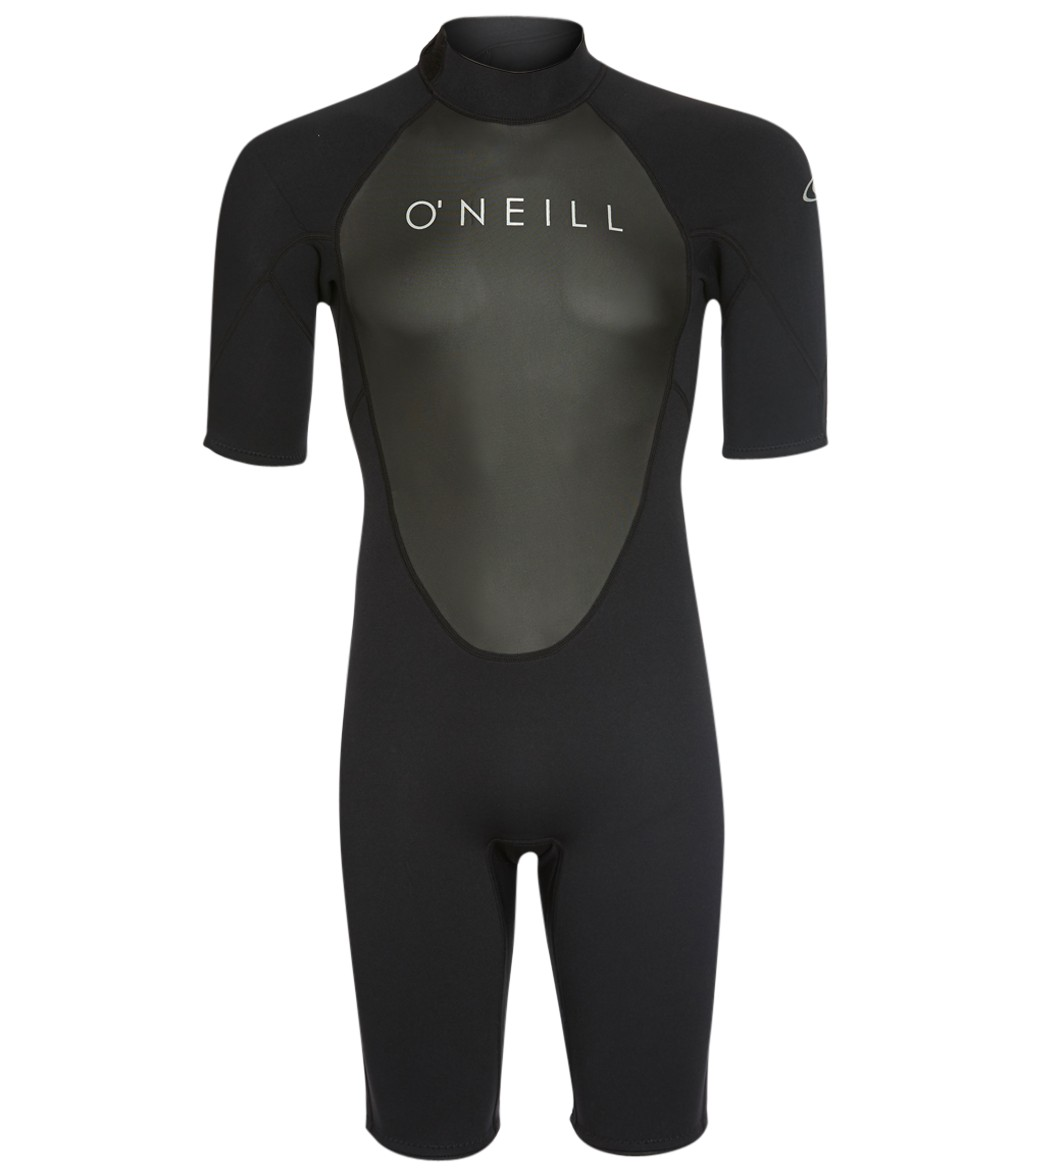 50d7f59876 O Neill Men s 2MM Reactor II Back Zip Short Sleeve Spring Suit at  SwimOutlet.com - Free Shipping